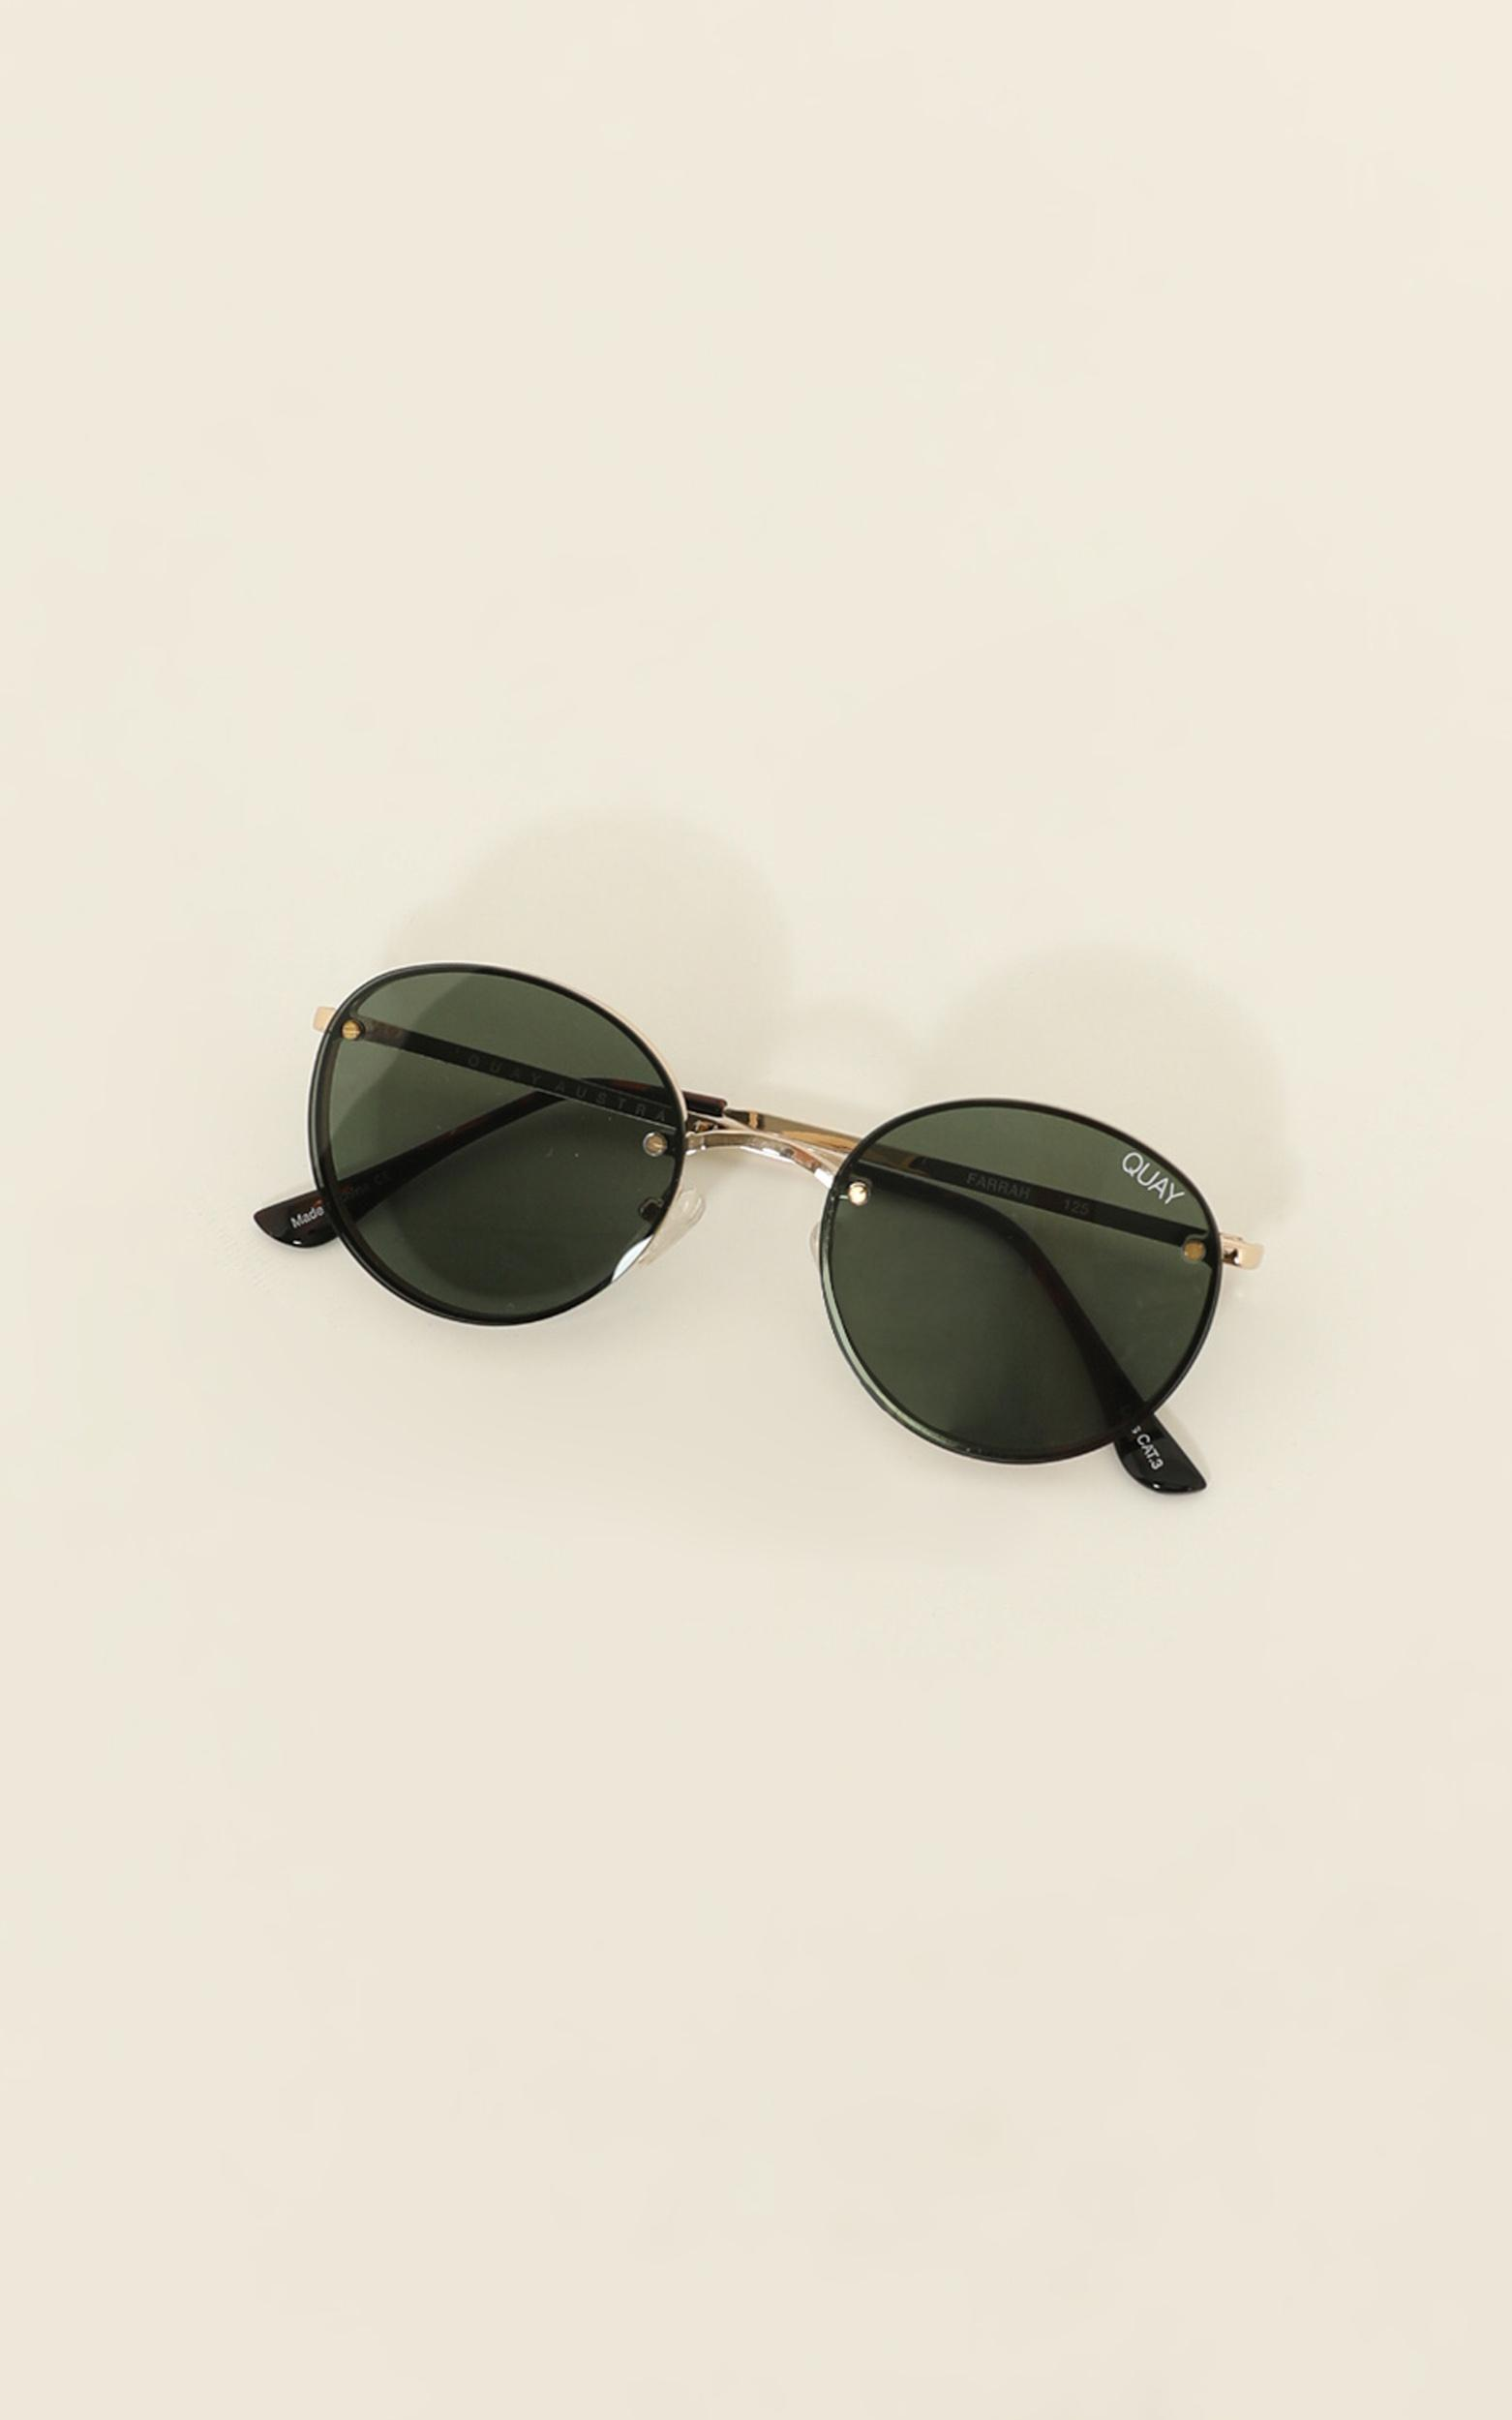 Quay - Farrah Sunglasses In Gold / Green Lens, Gold, hi-res image number null